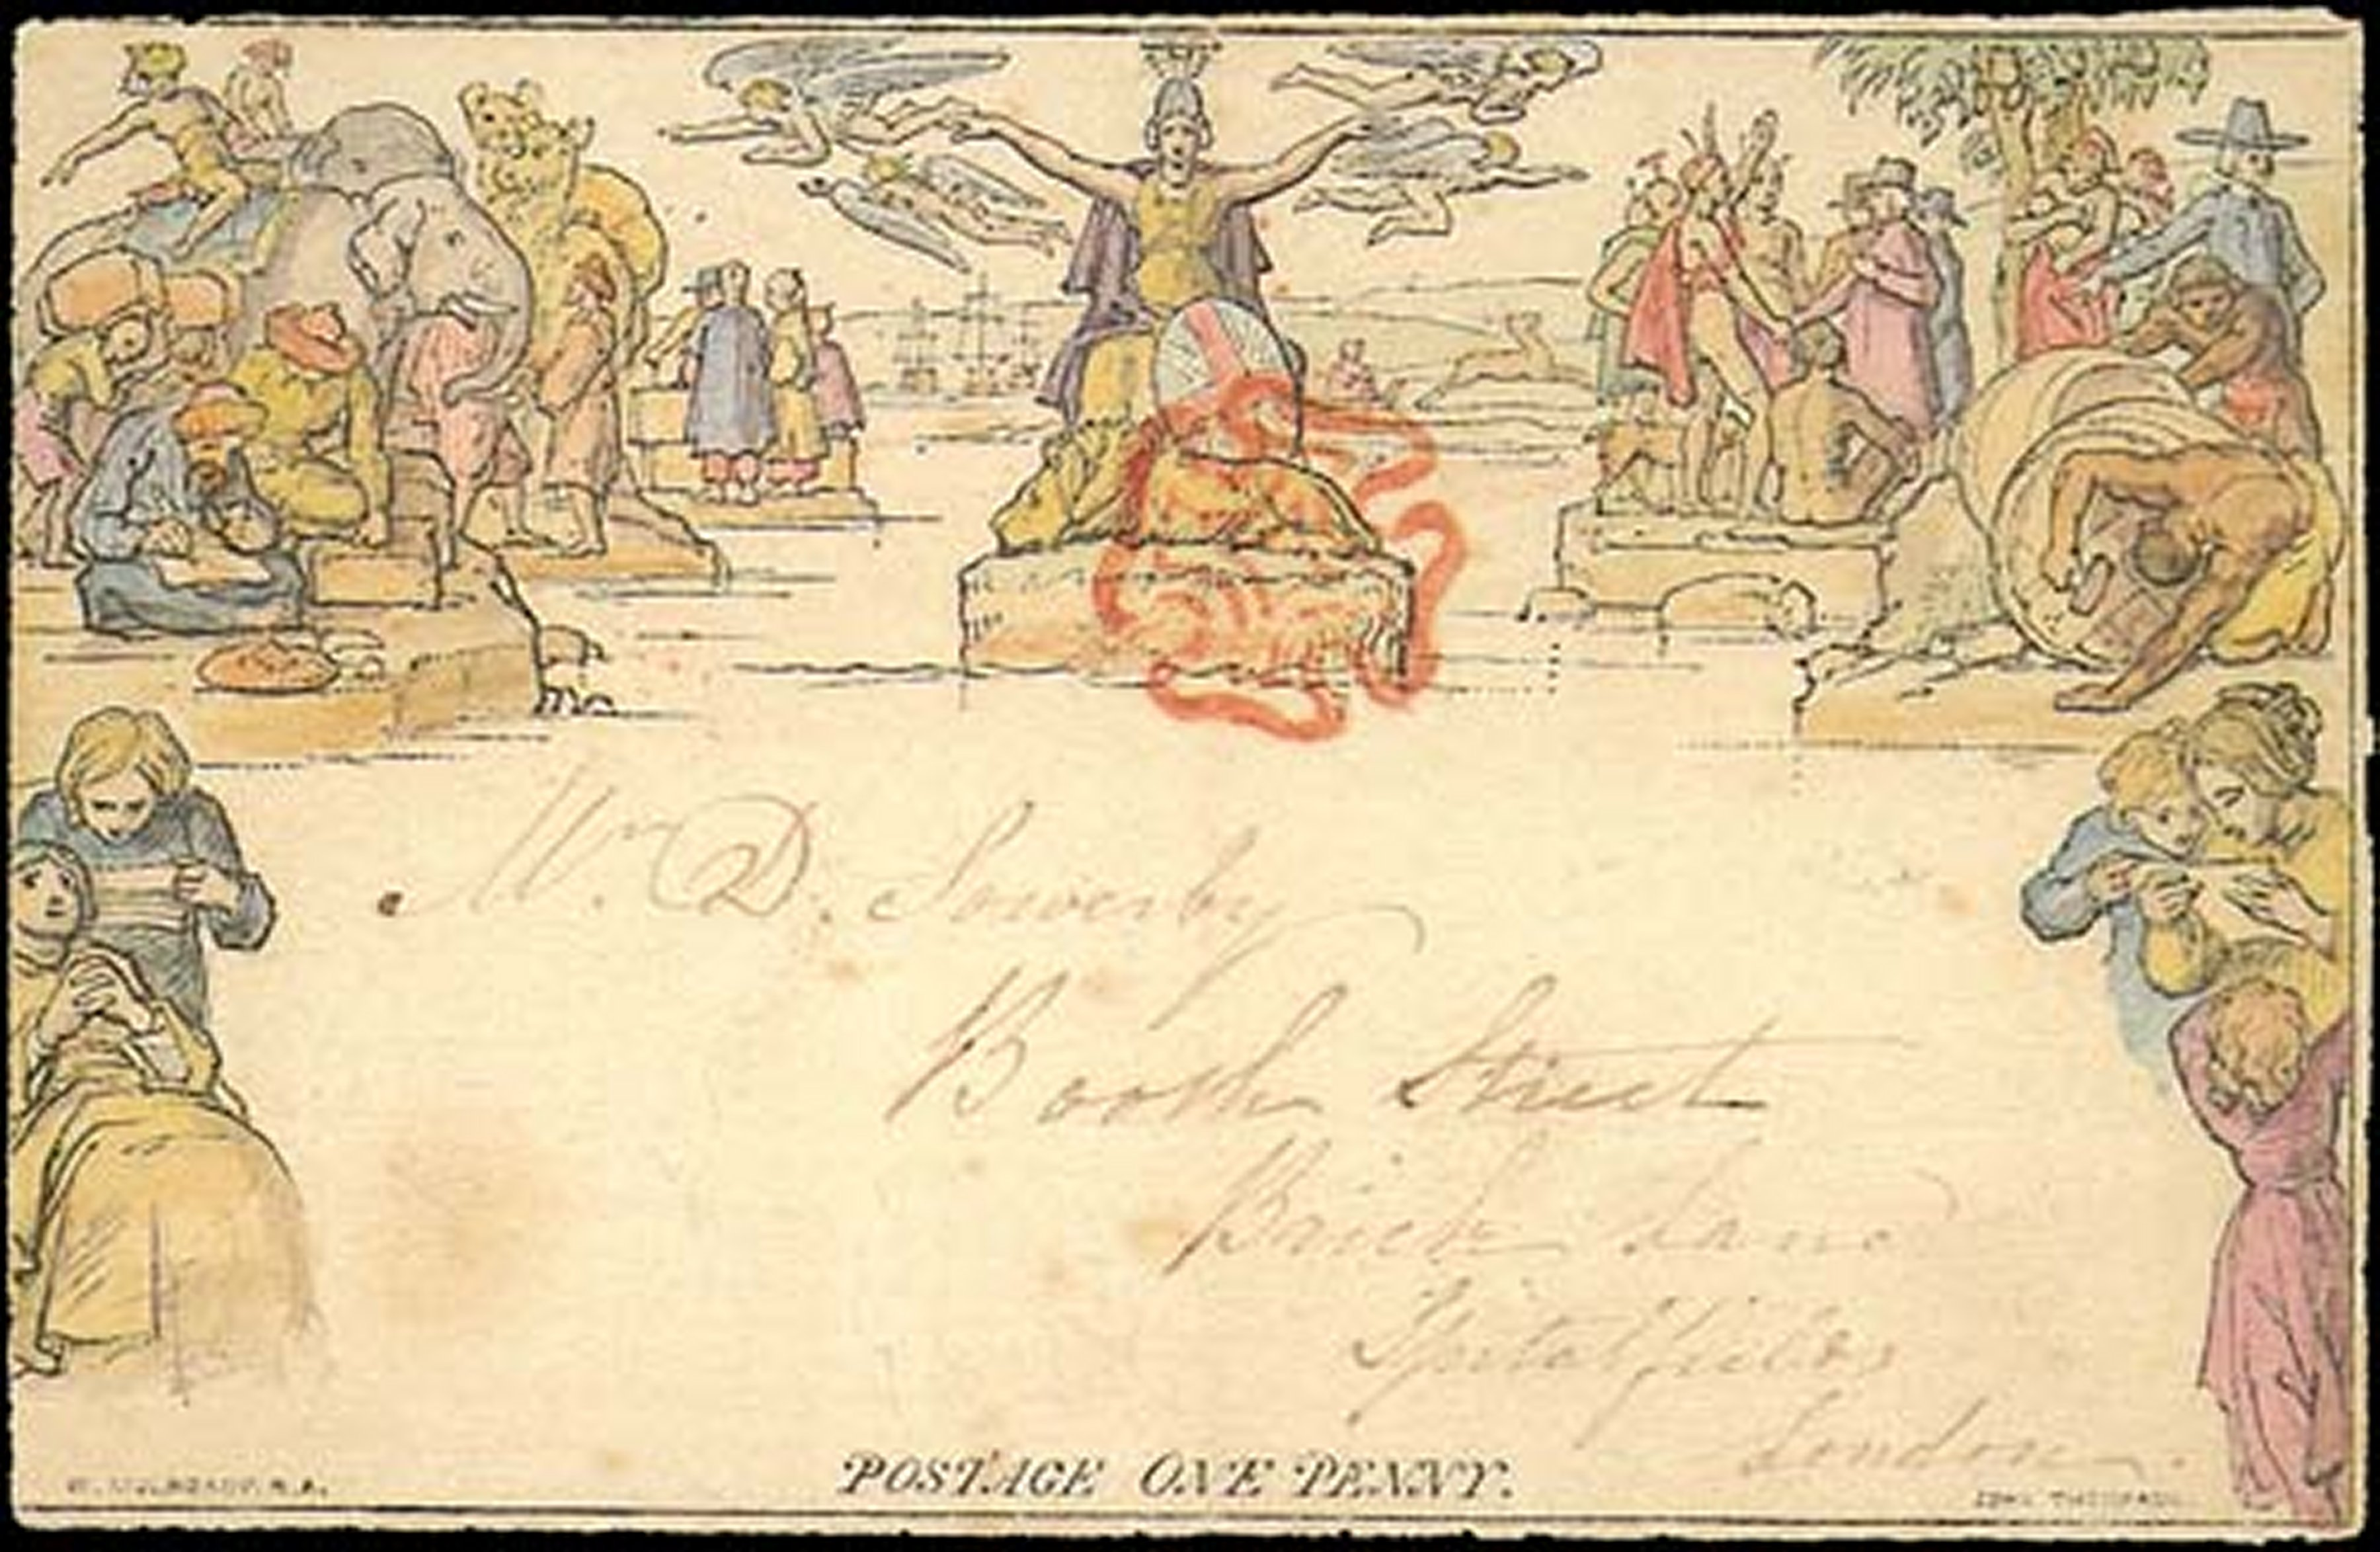 Mulready envelope cancelled with red Maltese cross. [NIMC-2018]